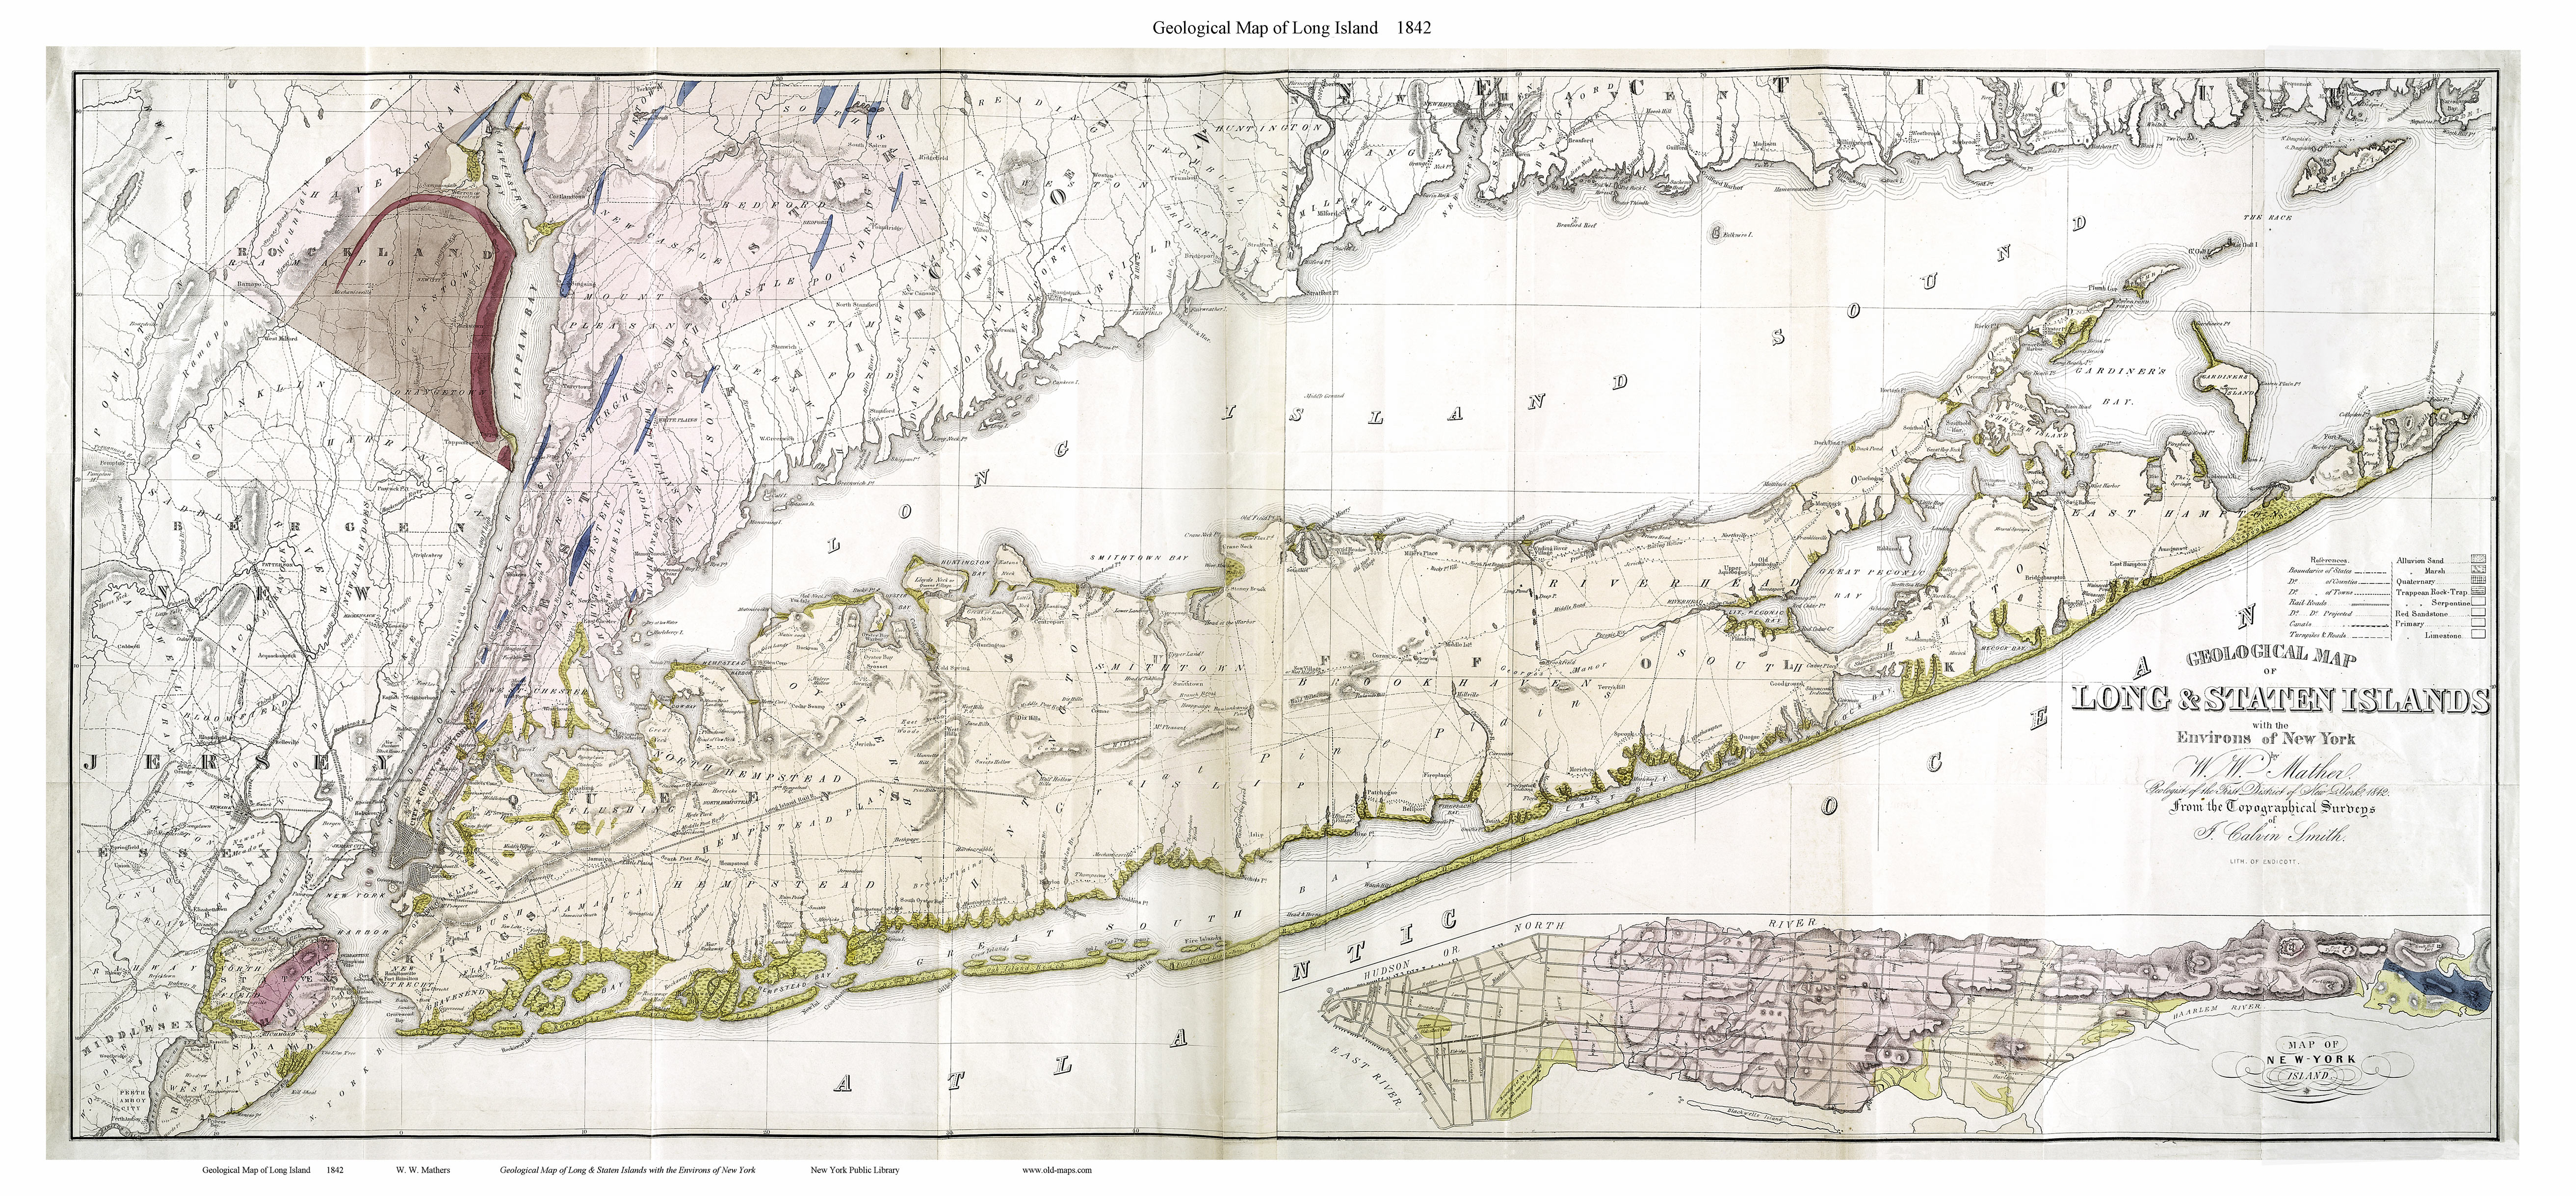 New York Map Long Island.Old Maps Of Long Island New York